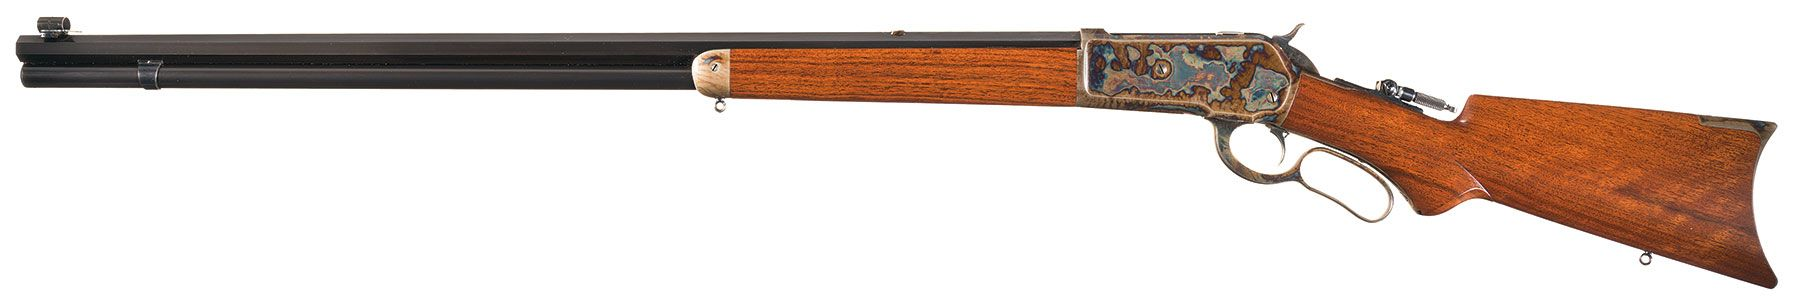 mint Winchester 1886 rifle